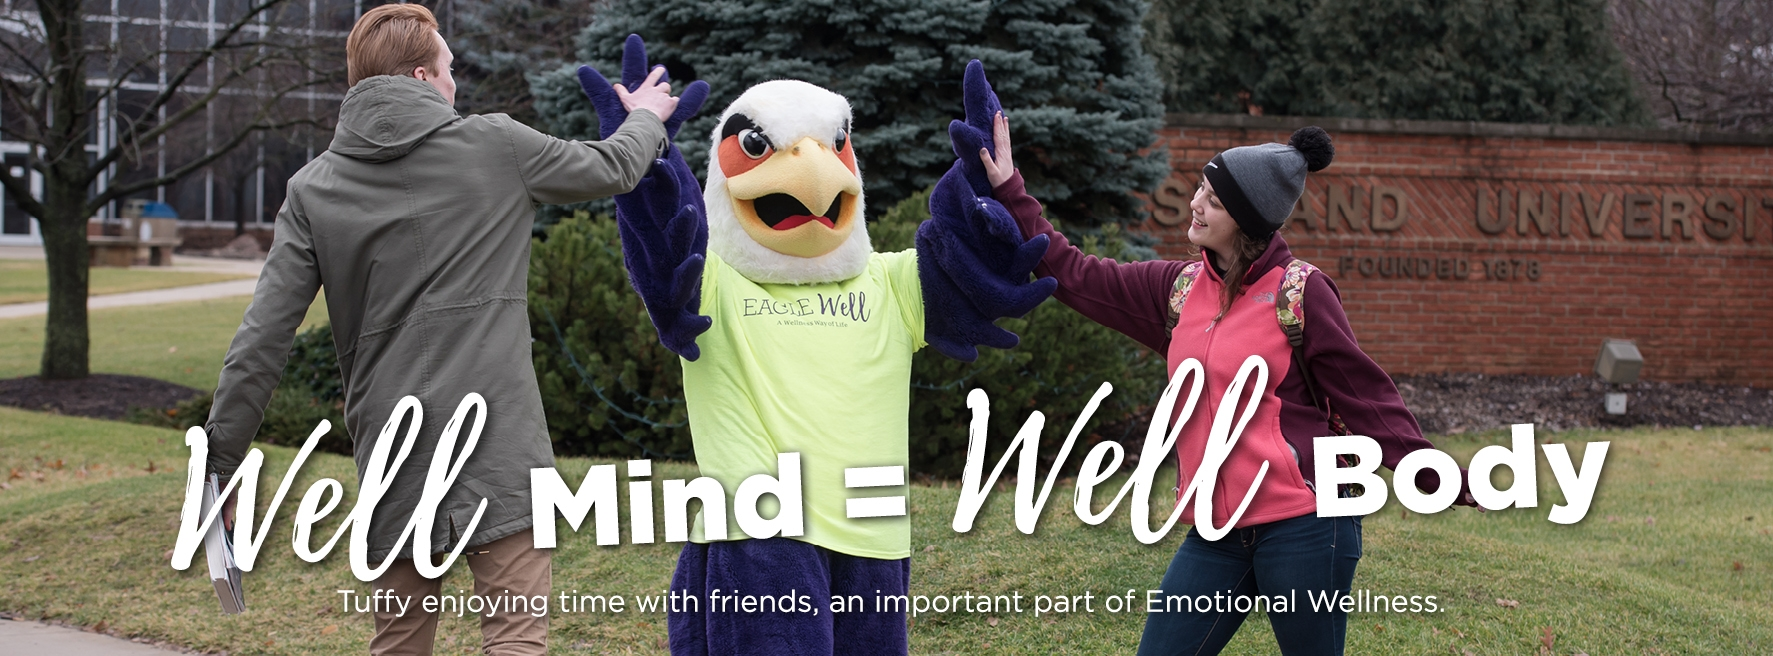 Well Mind = Well Body, Tuffy enjoying time with friends, an important part of Emotional Wellness